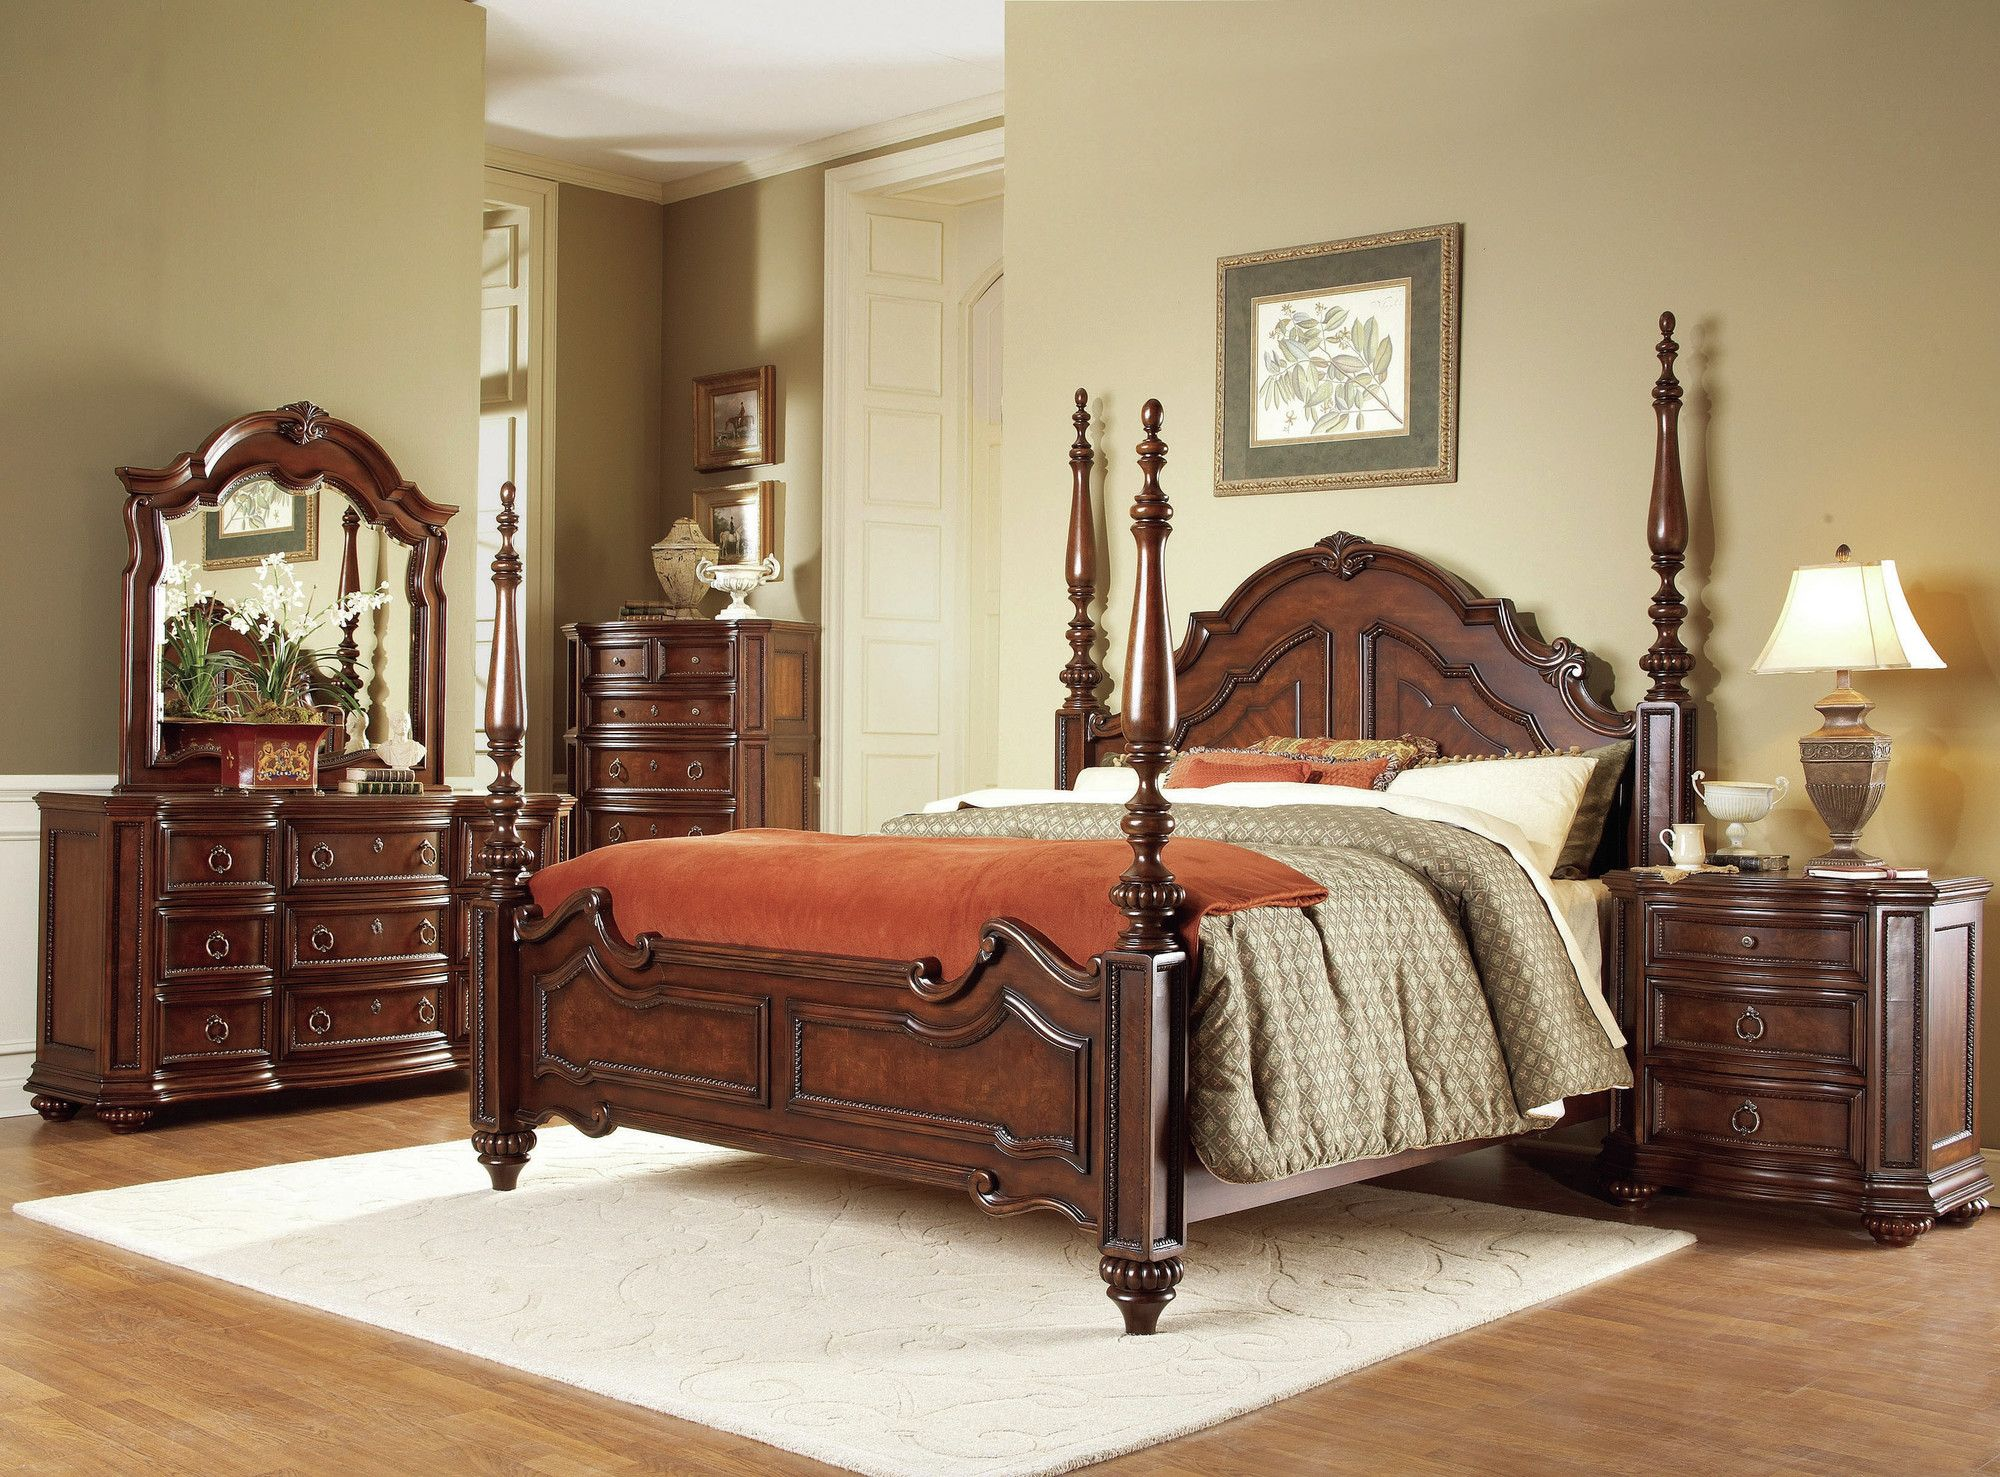 Woodhaven Hill 1390 Series Four Poster Bed U0026 Reviews | Wayfair